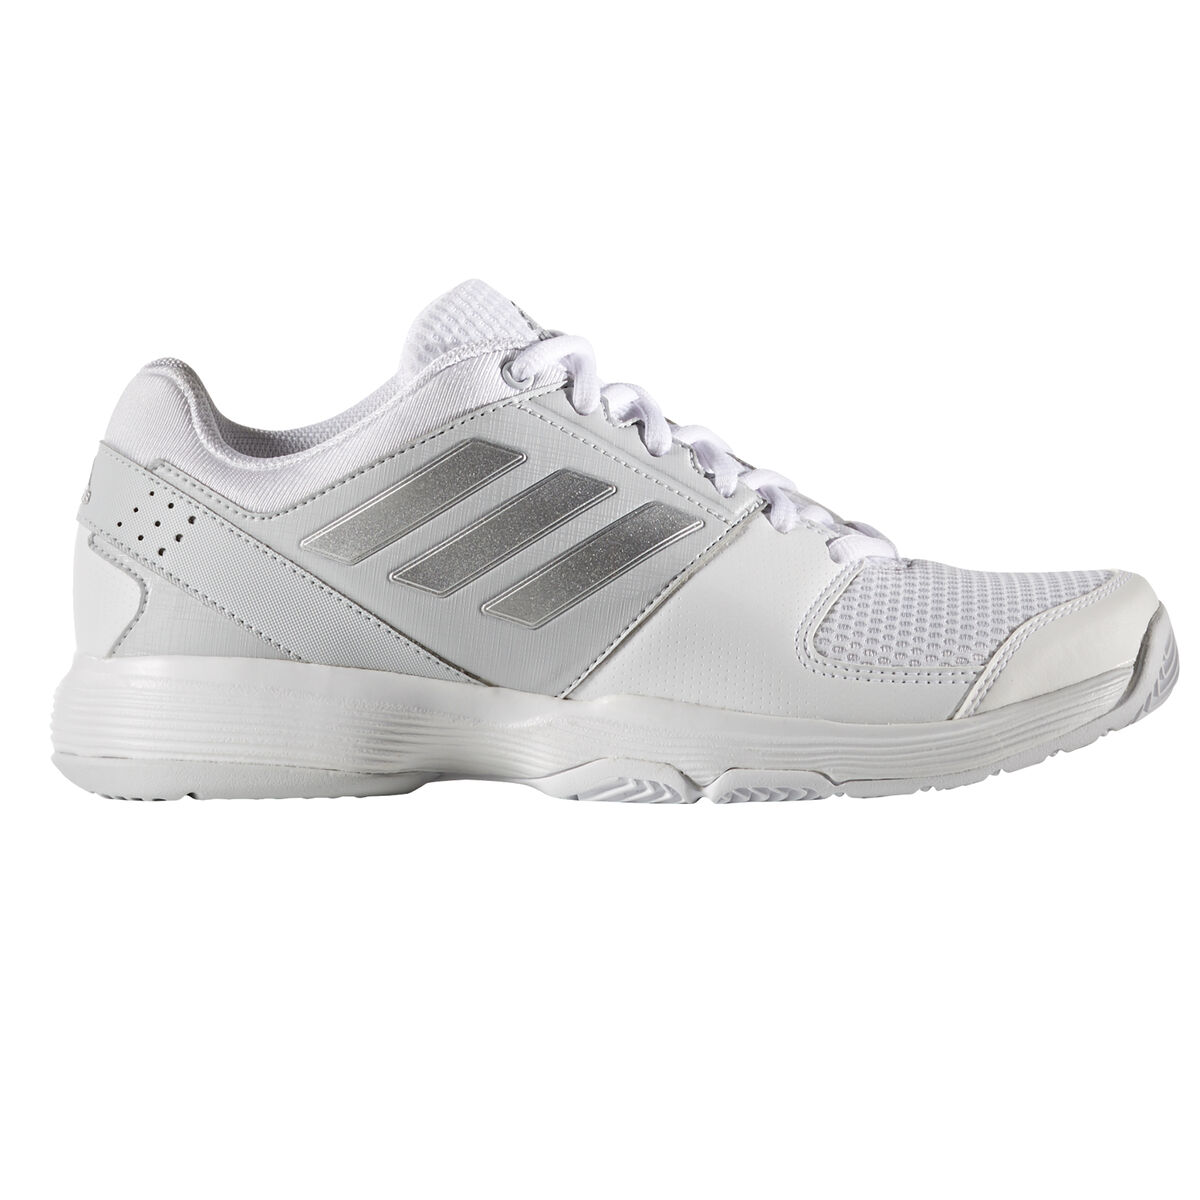 new arrival f9b32 d3bb7 Images. adidas Barricade Court Women  39 s Tennis Shoe - White Silver